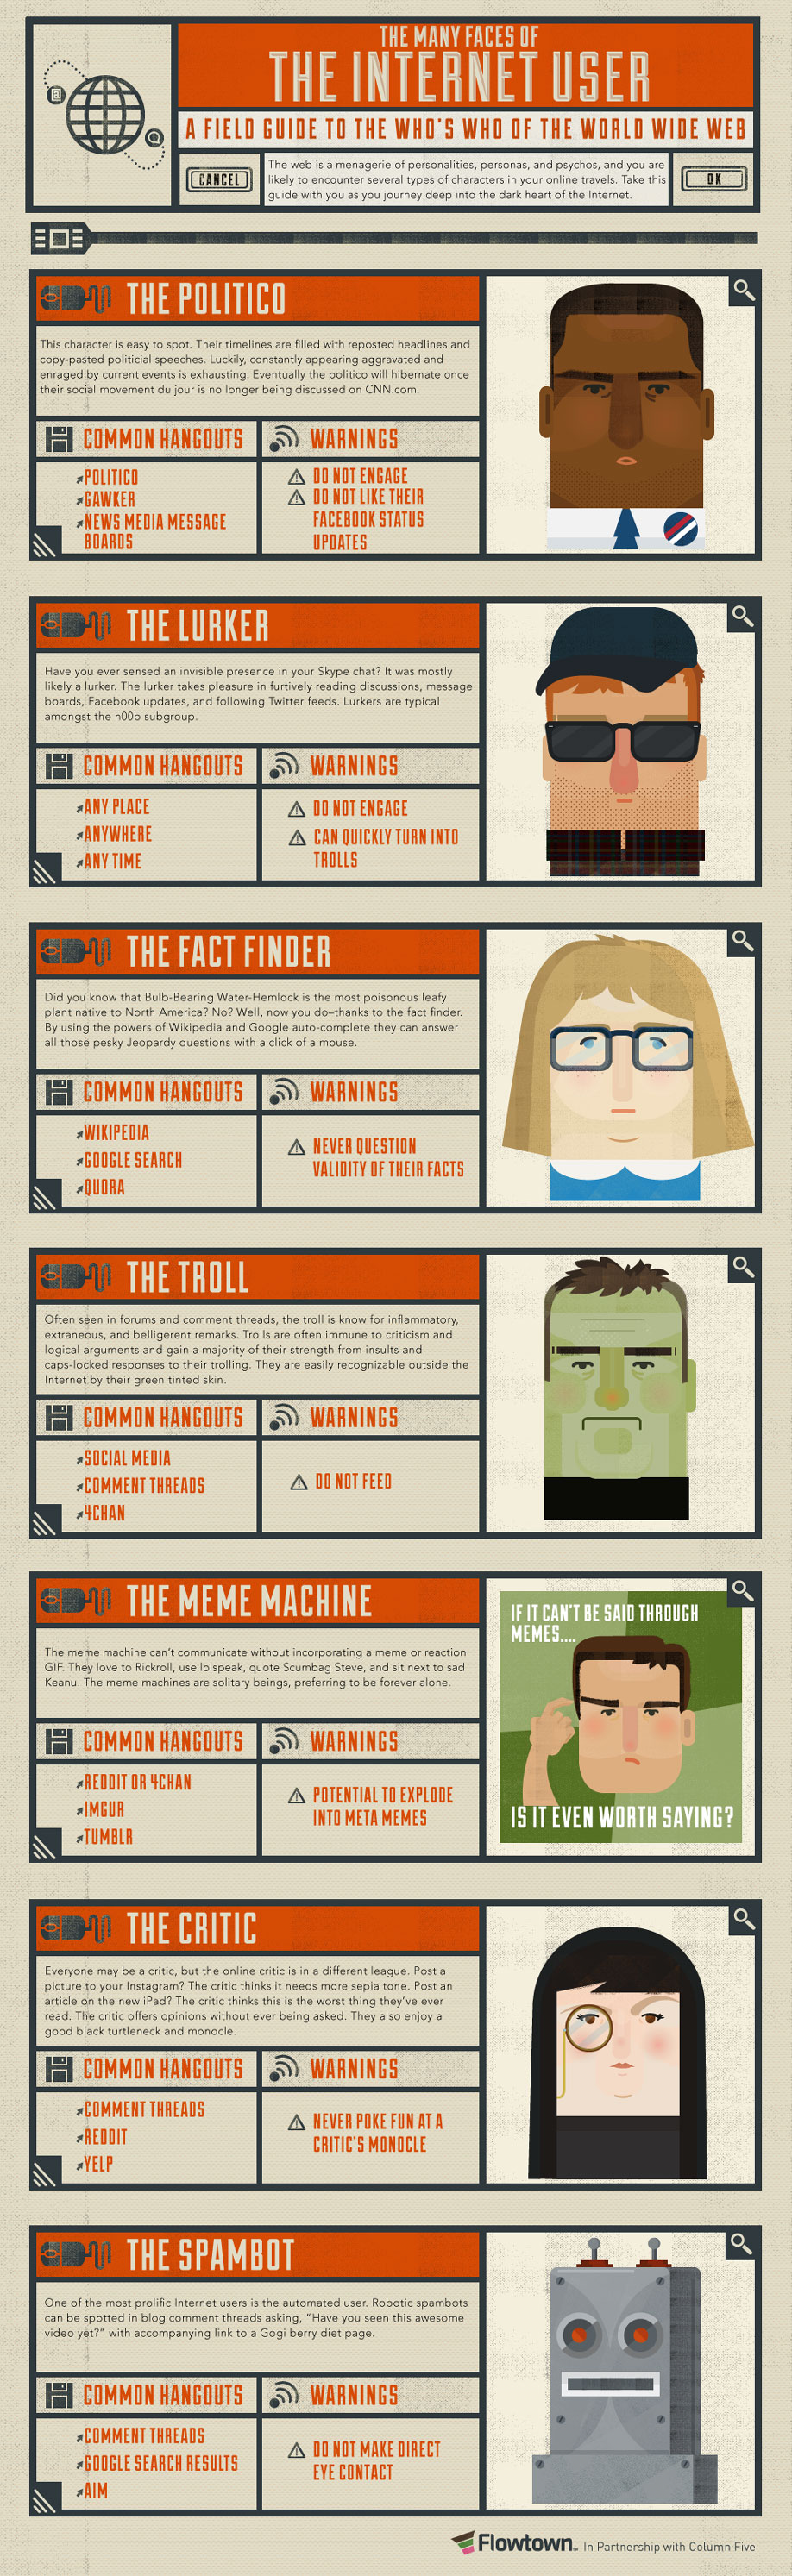 Infographic: The Many Faces of the Internet User